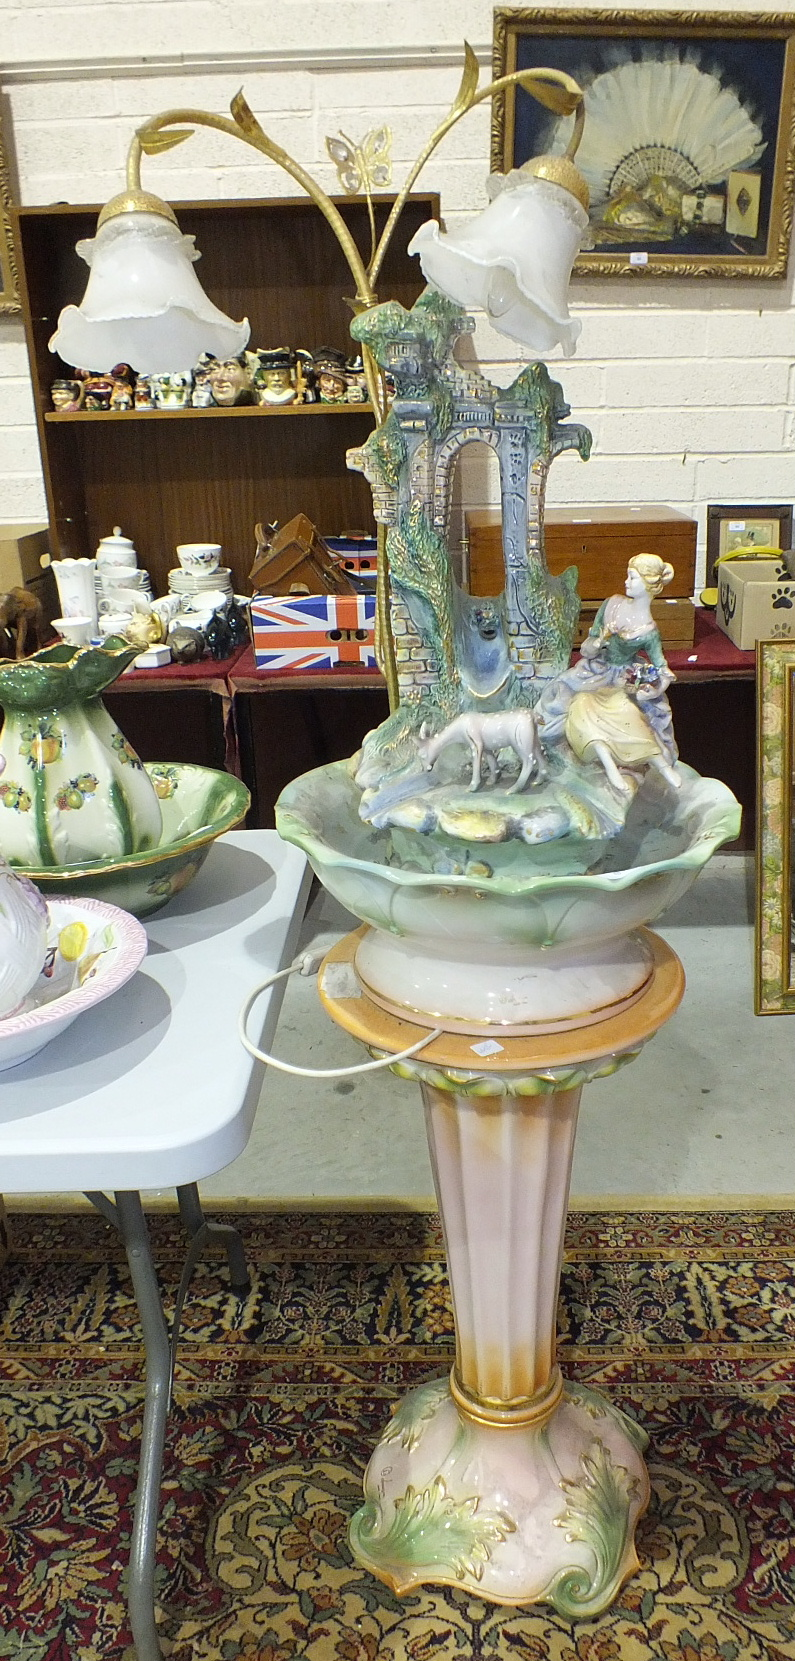 Lot 95 - A ceramic jardinière with attached gilt metal two-light fitting with glass lamp shades and a